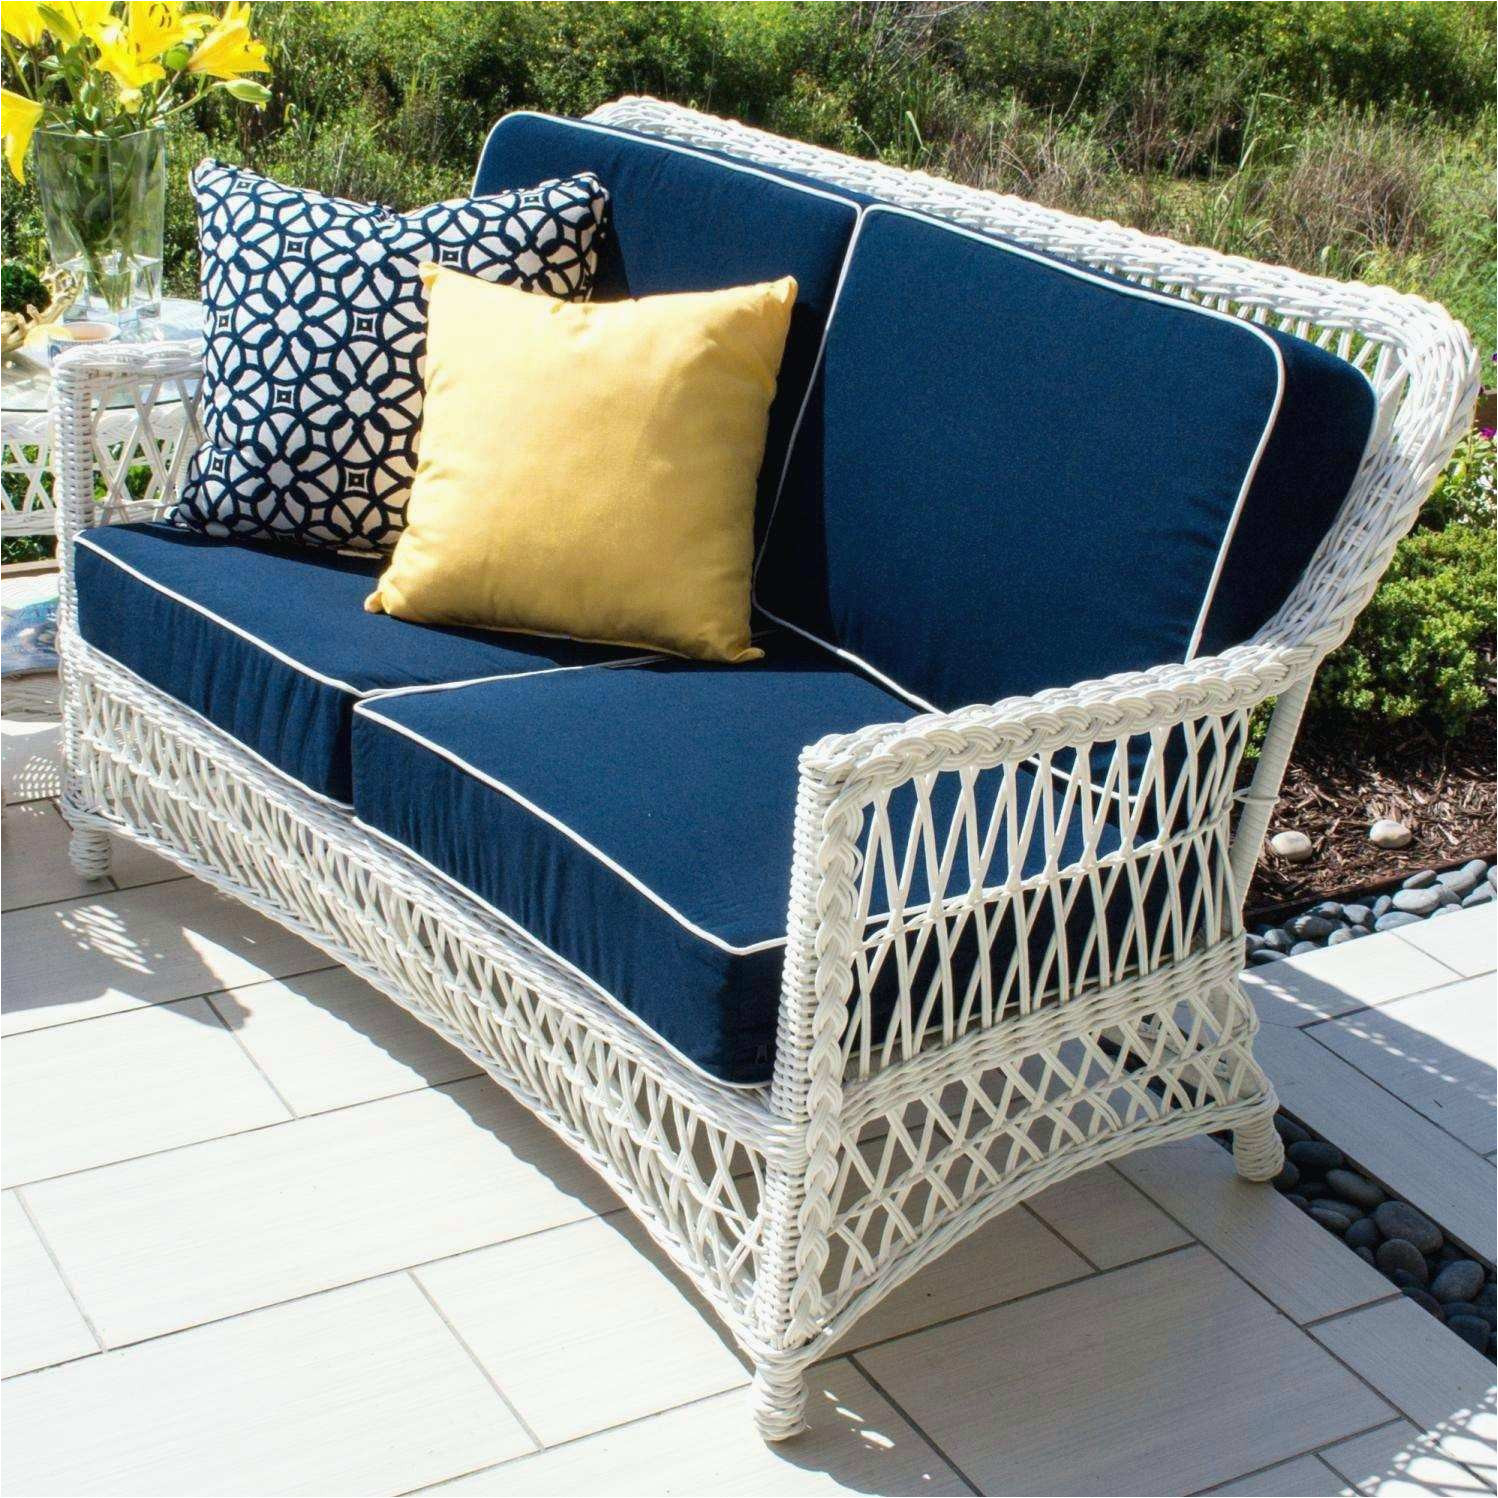 stretchhusse sofa einmalig chairs frame new papasan chair frame clear wicker outdoor sofa 0d